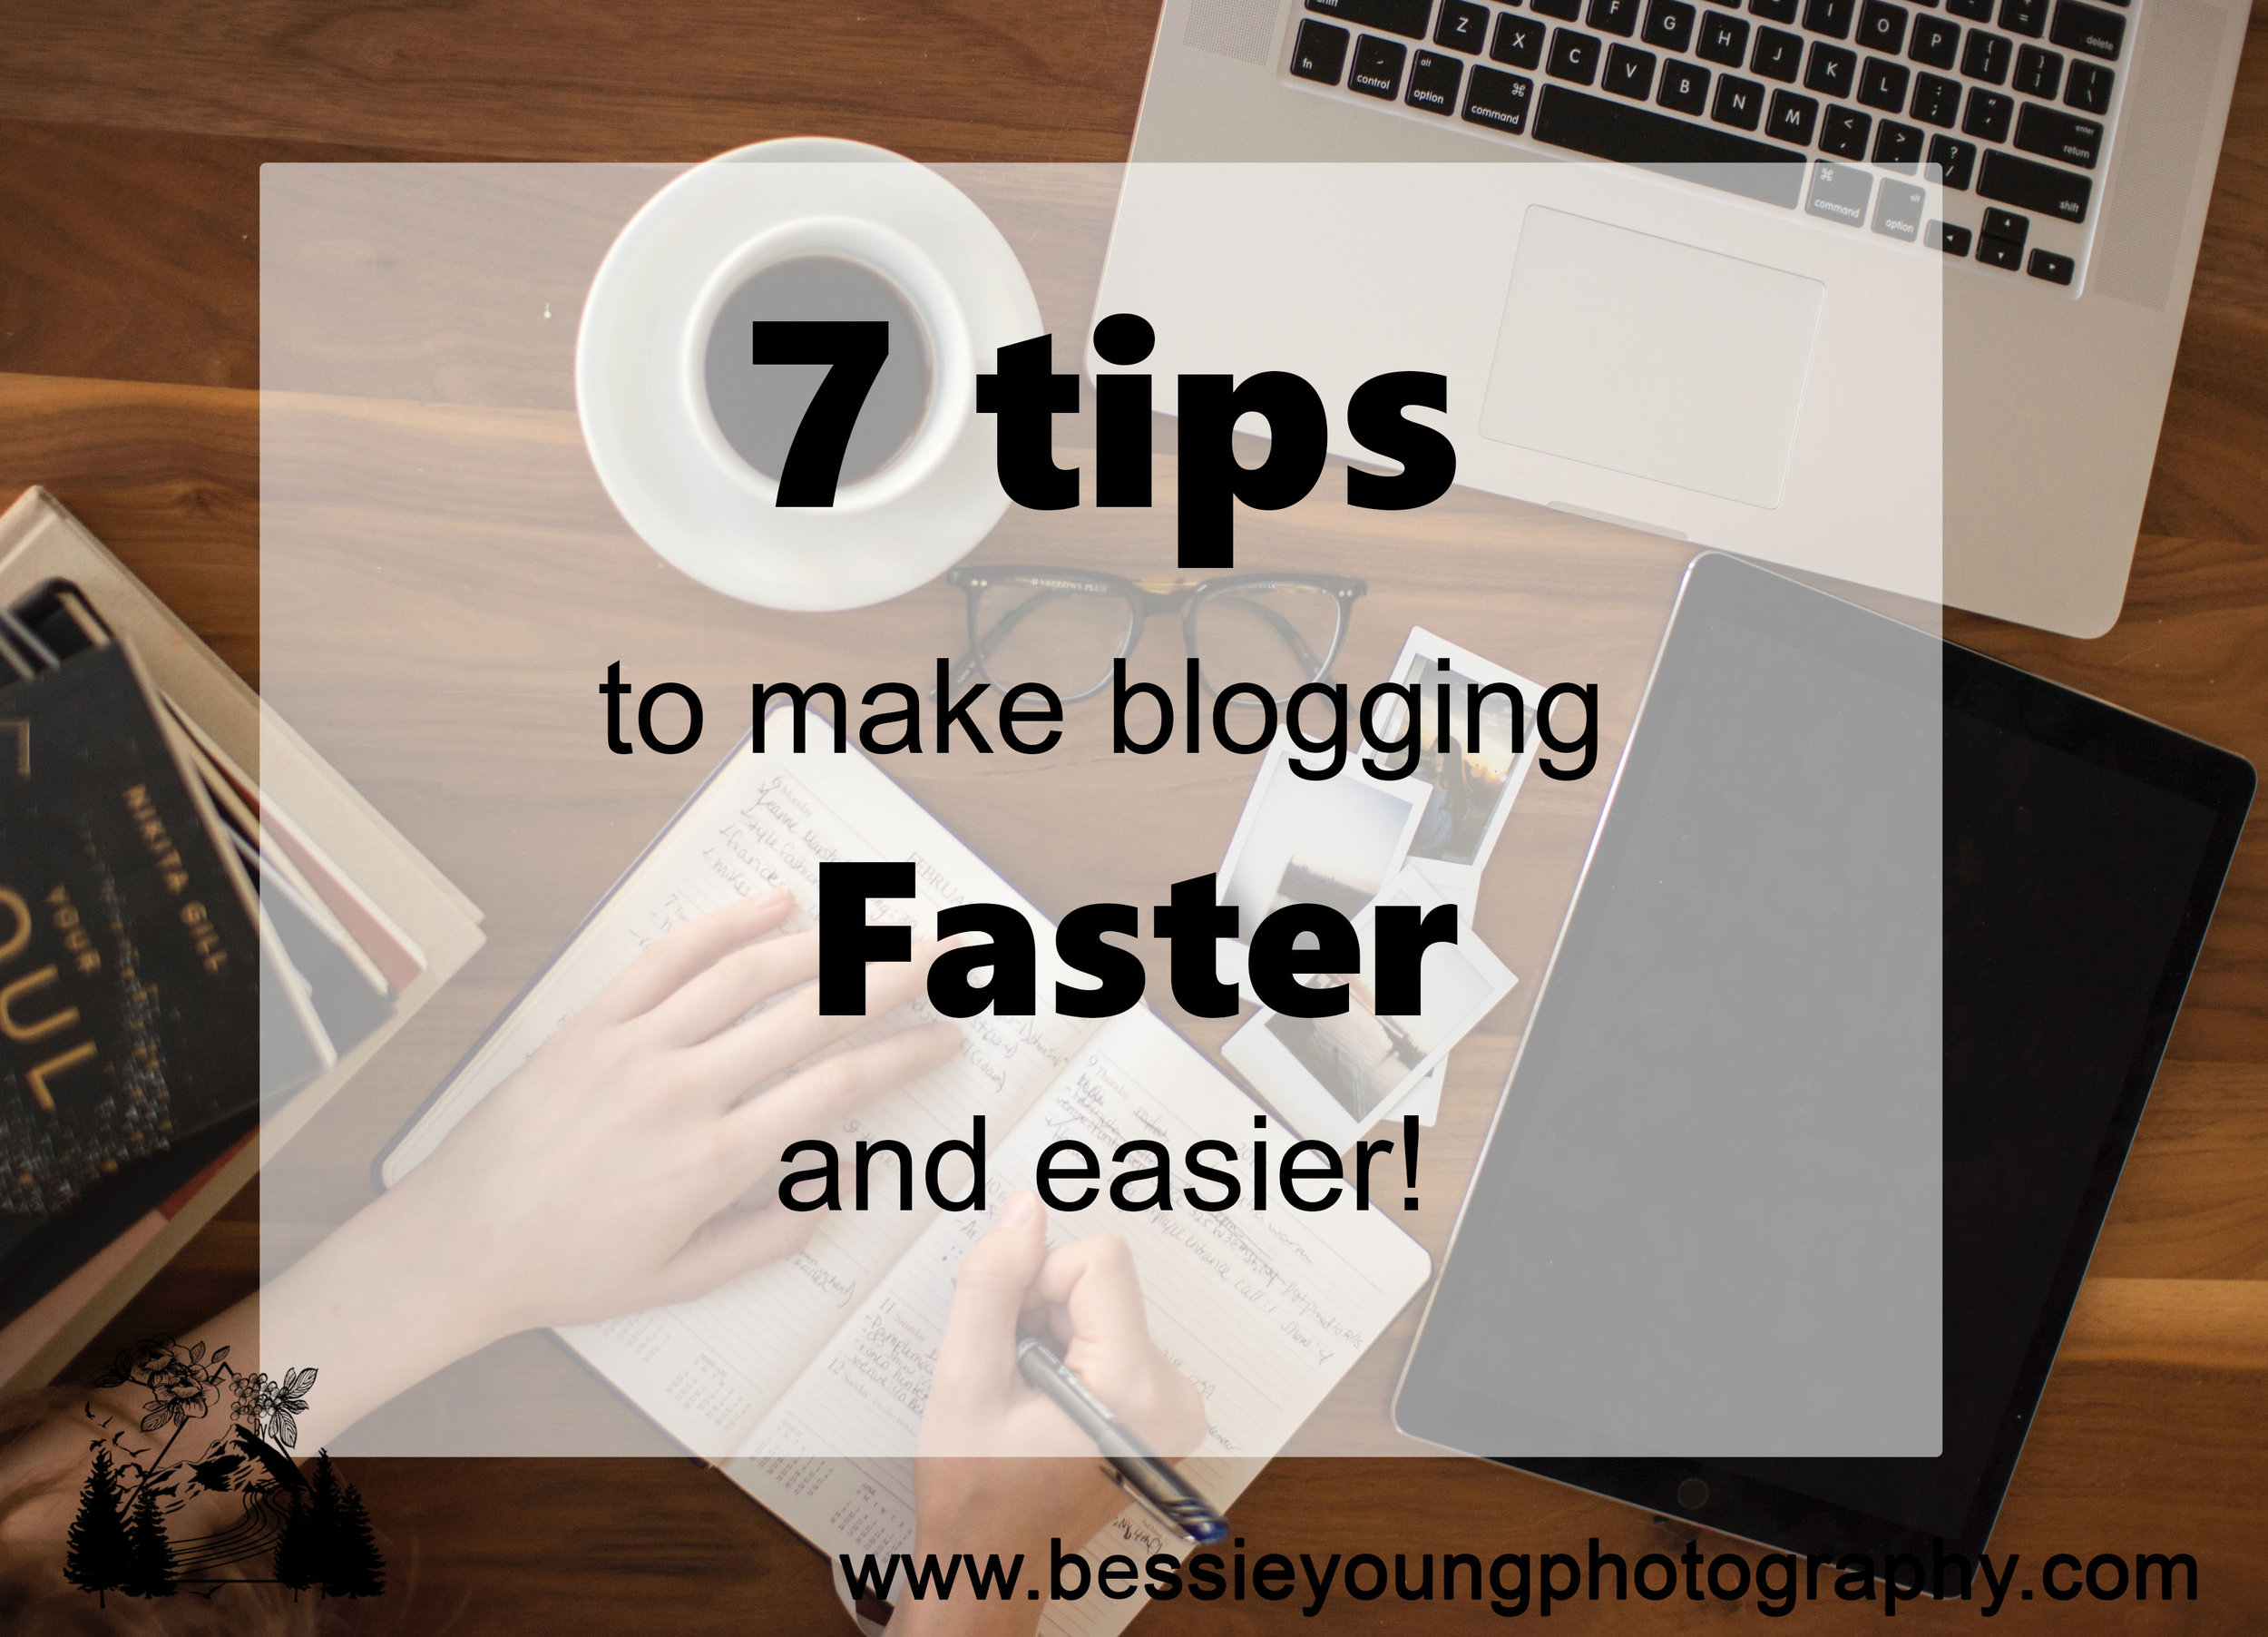 7 Tips to Make Blogging Easier and Faster by Bessie Young Photography